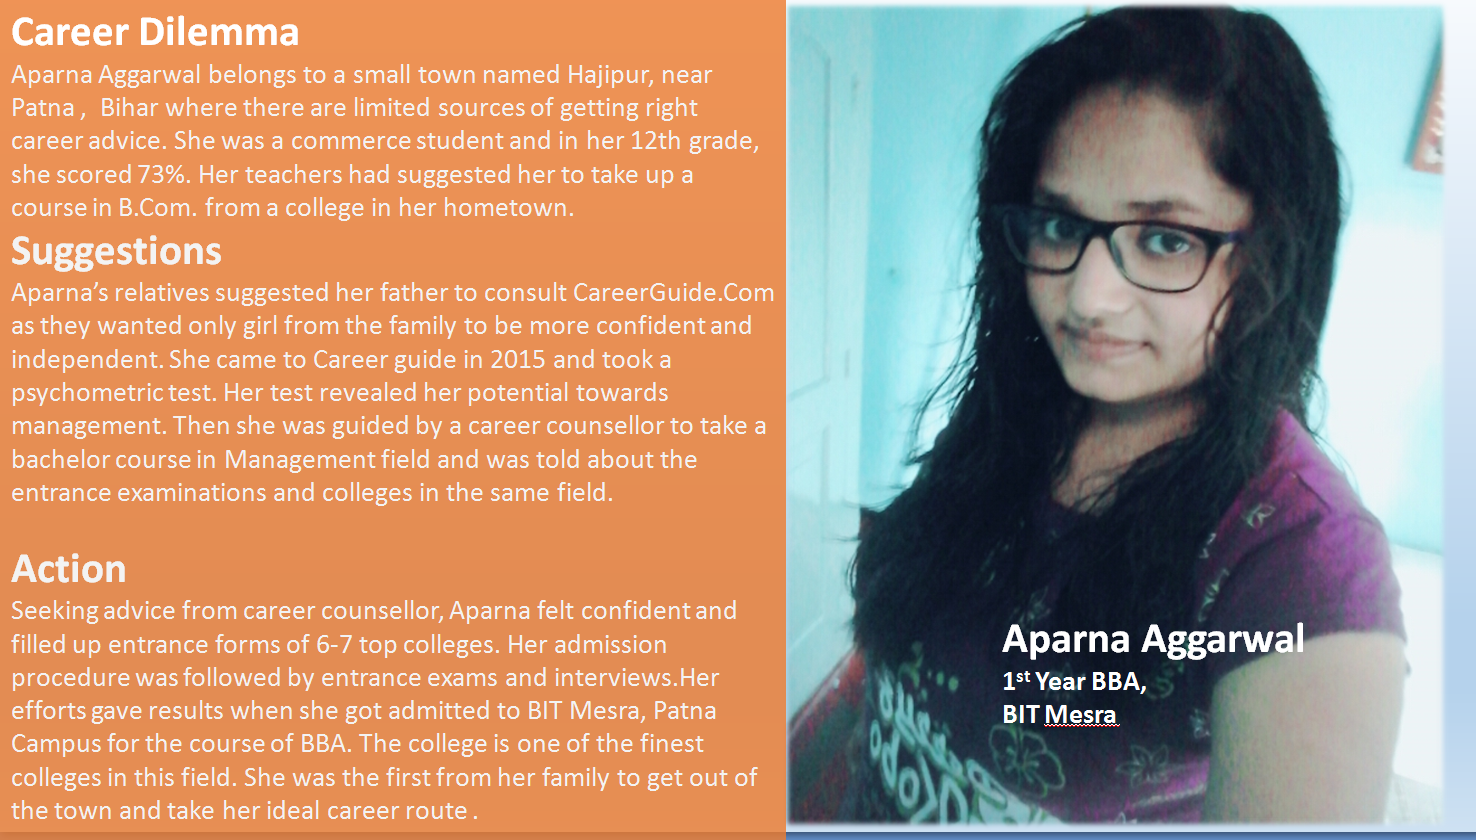 Career Guidance helped Aparna to get admission in BIT Mesra